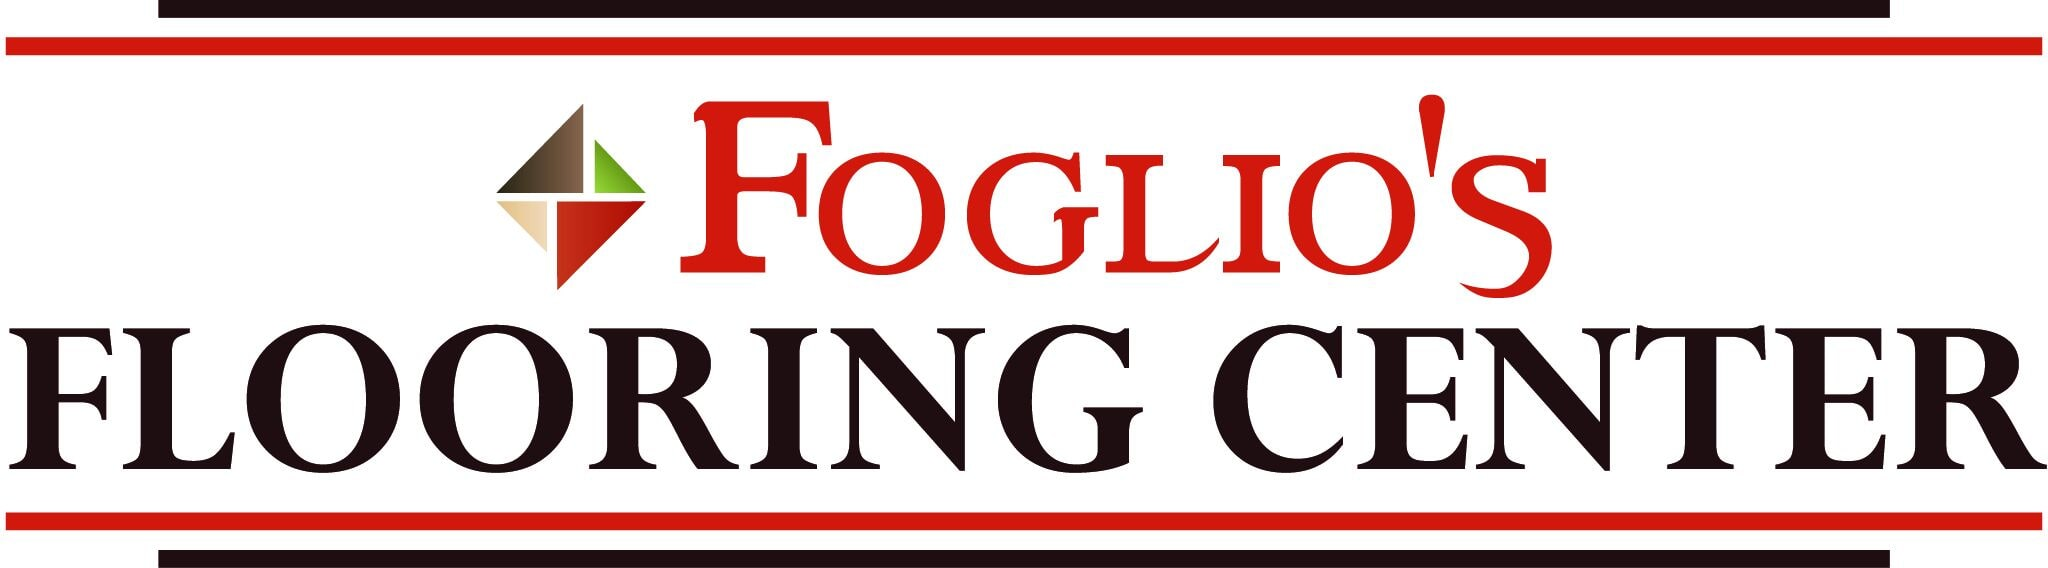 Foglio's Flooring Center